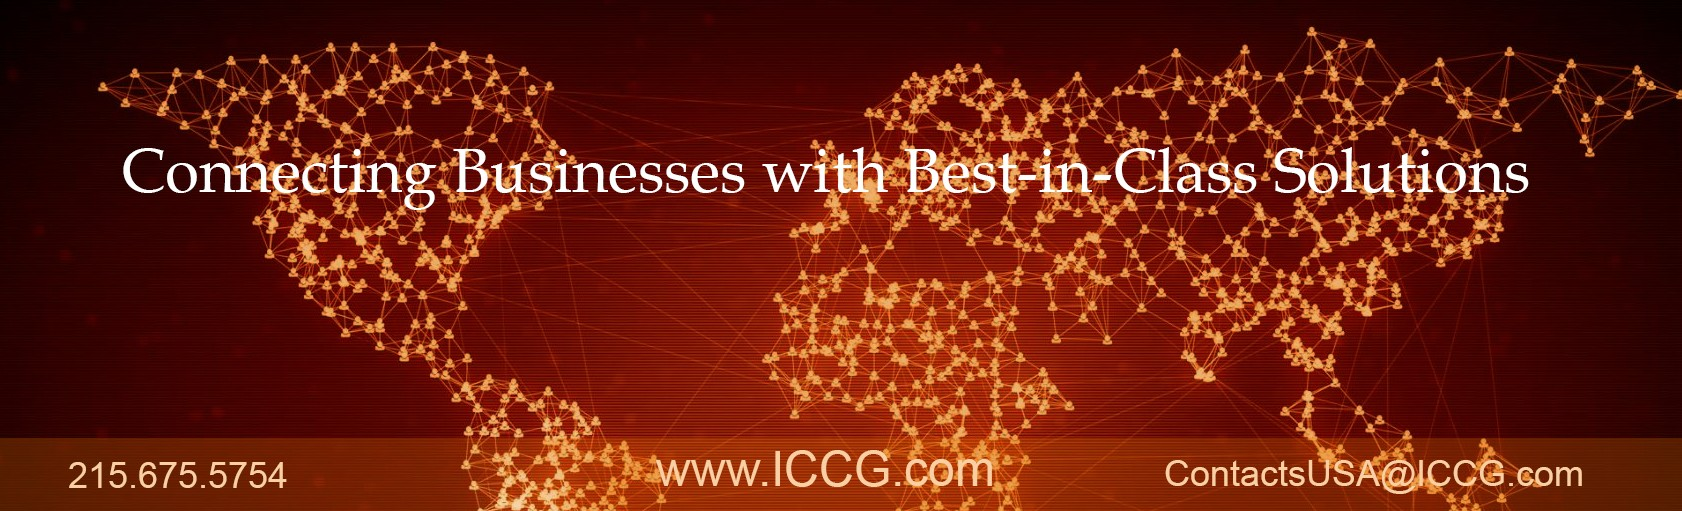 ICCG - Independent Computer Consulting Group | LinkedIn